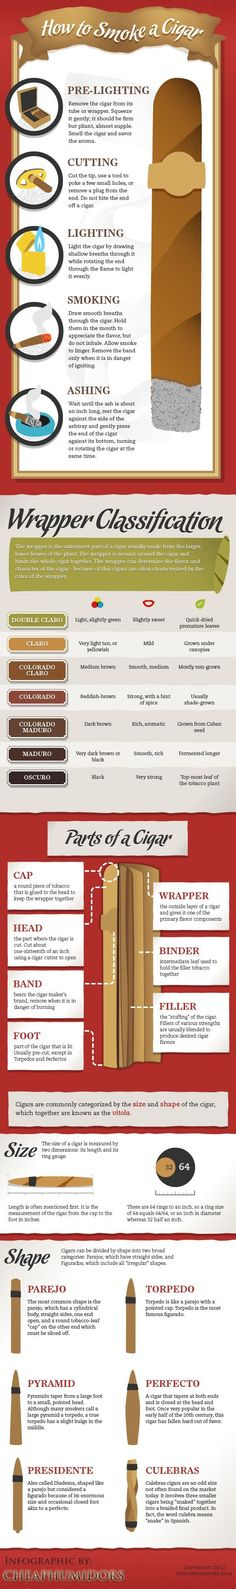 Hope everyone had a great Memorial Day! If you're a regular visitor to our blog, thanks for following our Cigar 101Top 5 Super Bowl Cigar Smokers. Read more ... » infographic[INFOGRAPHIC] The Anatomy of a Tobacco Plant. Read more ... » posts. Here is the infographic in its entirety. Also, make sure to check out …